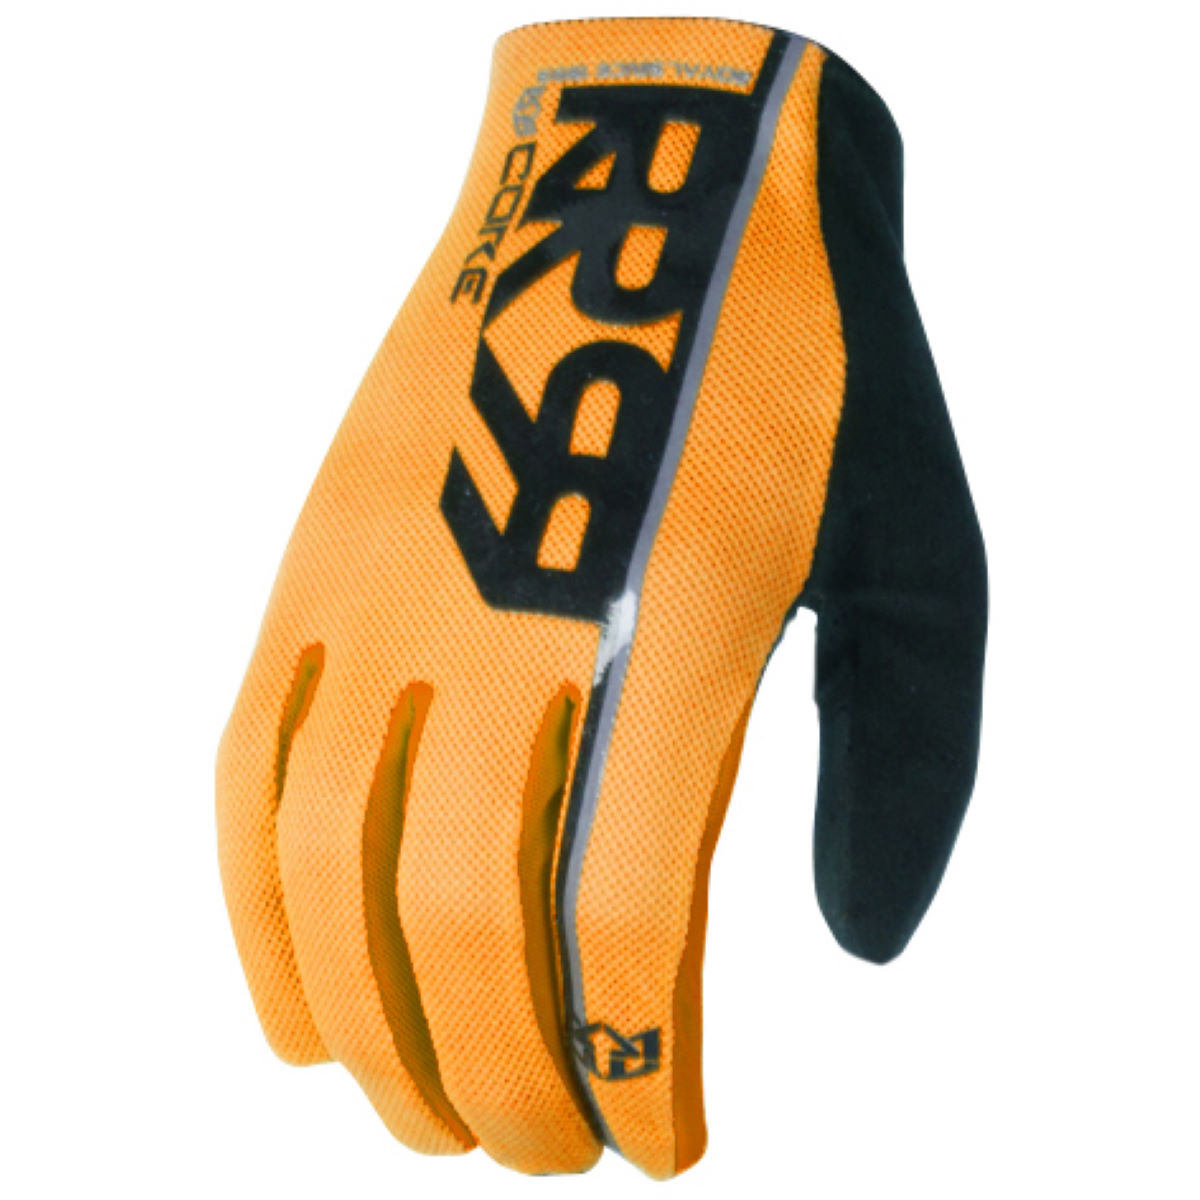 Royal Core Gloves - Guantes